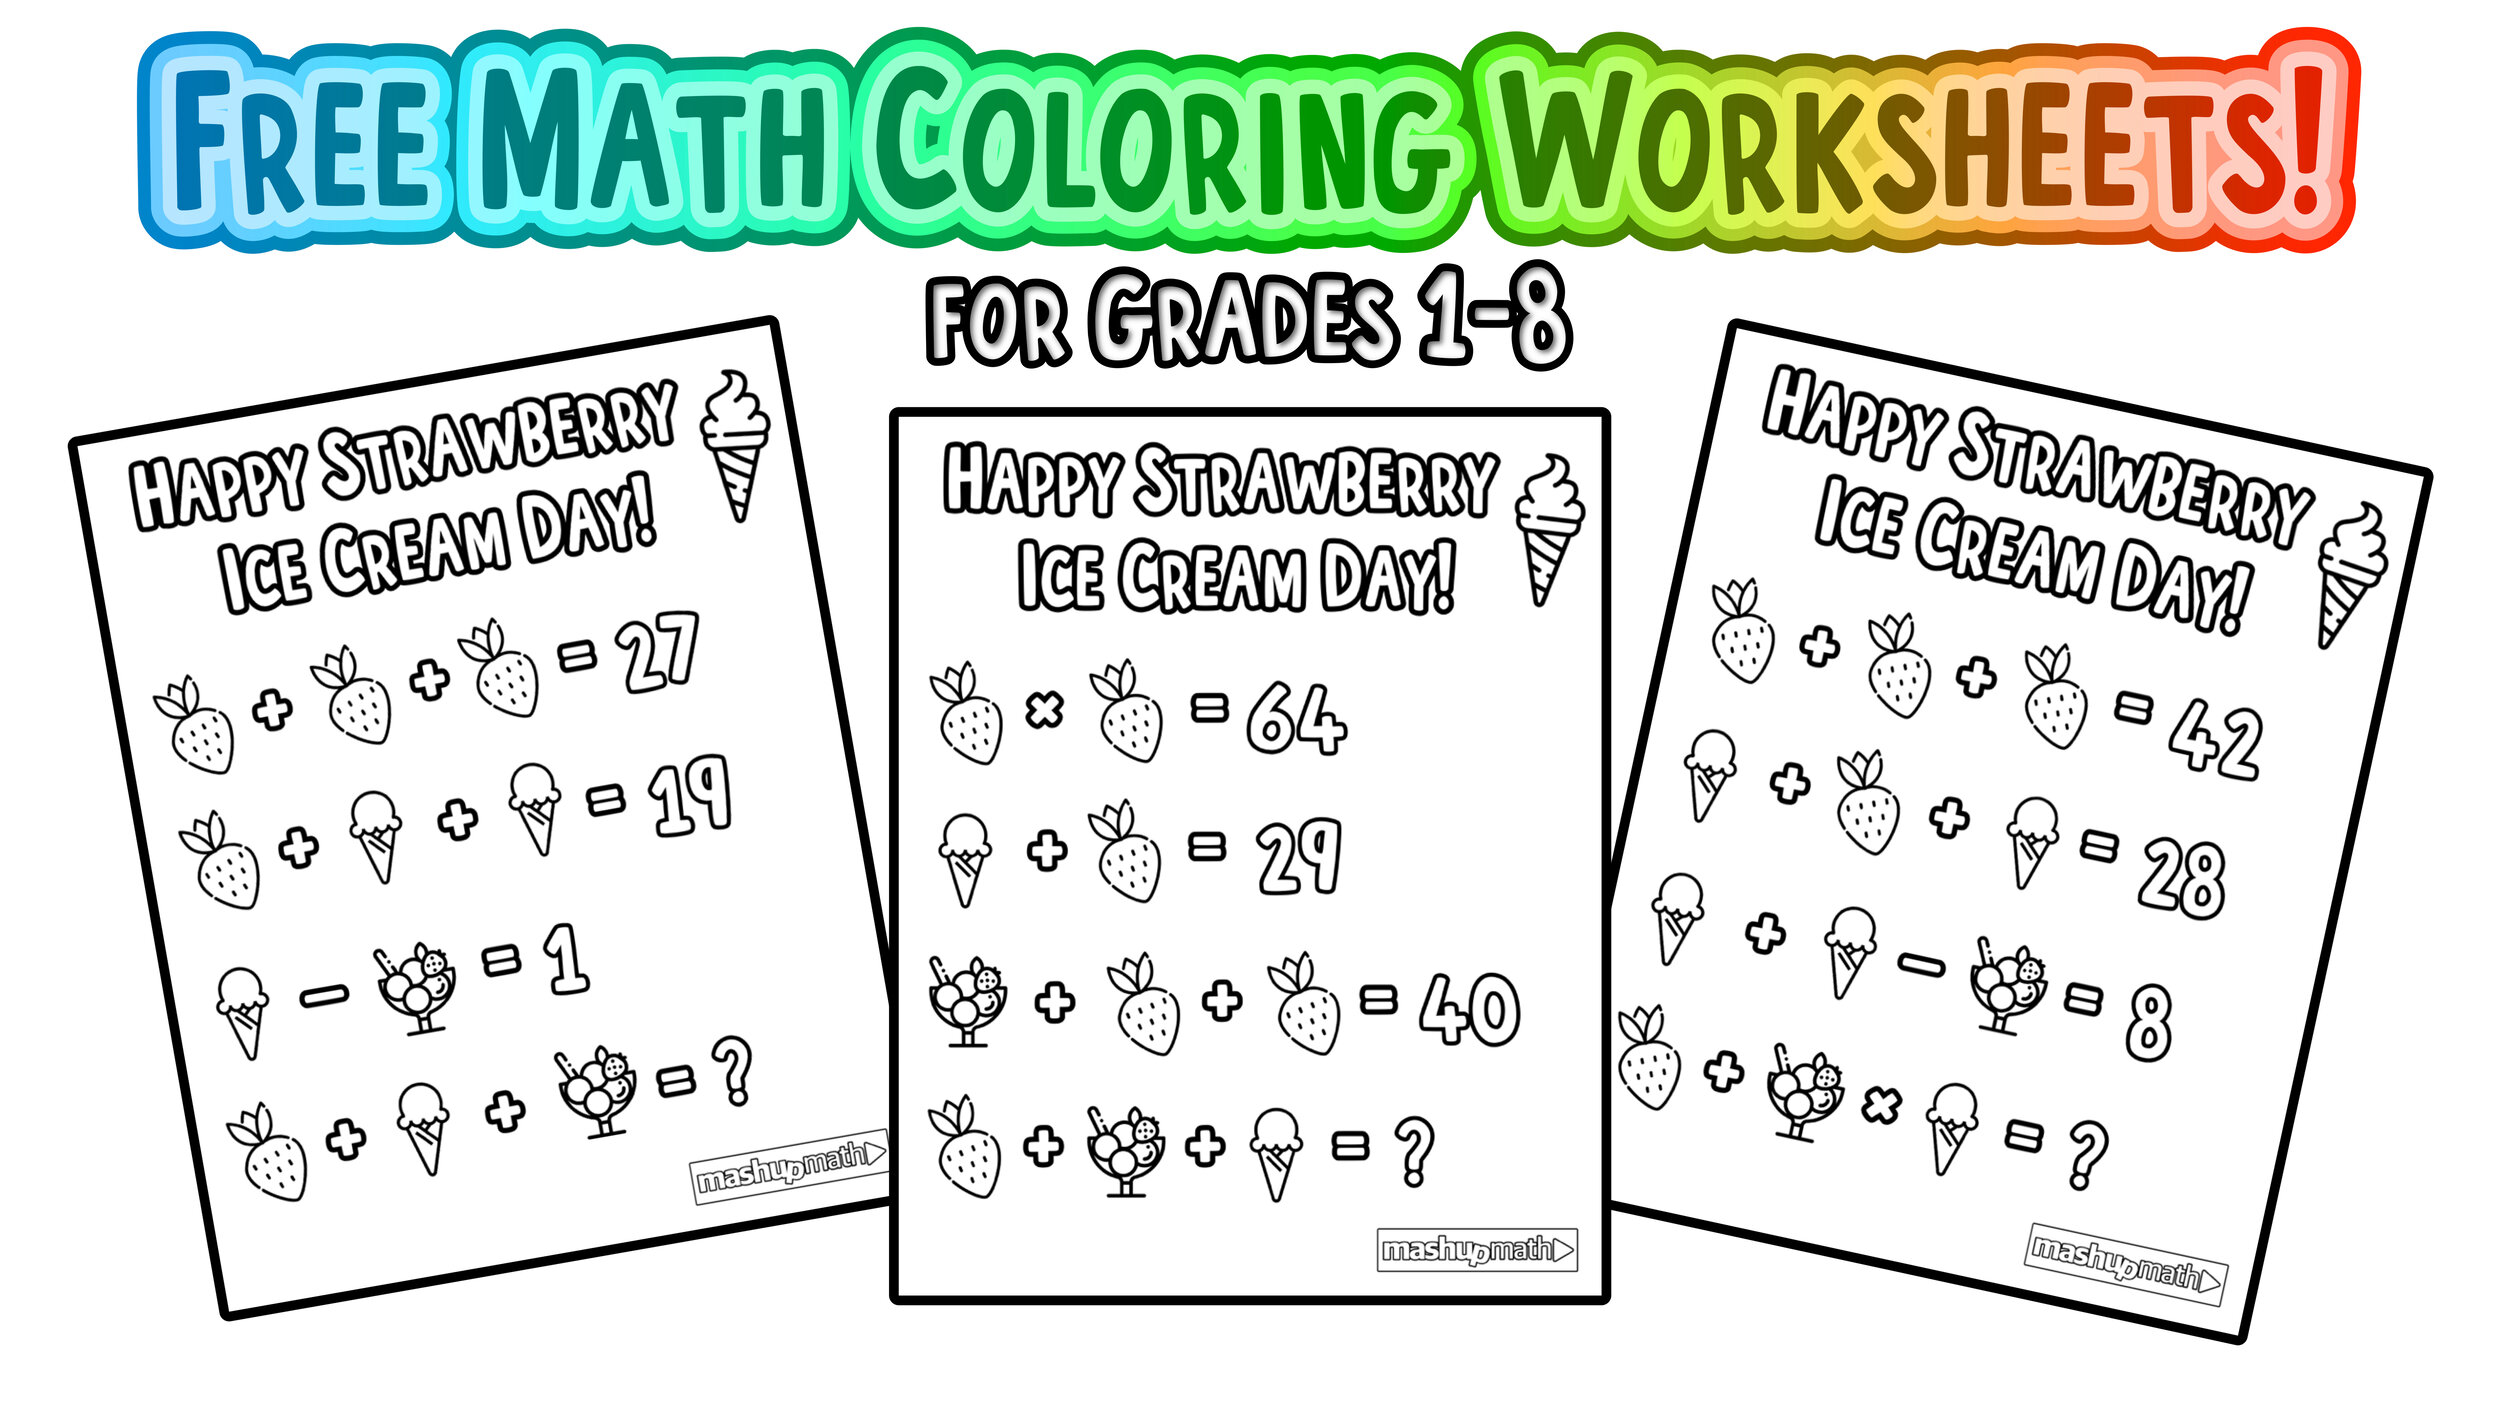 small resolution of Free Math Coloring Pages for Grades 1-8 — Mashup Math